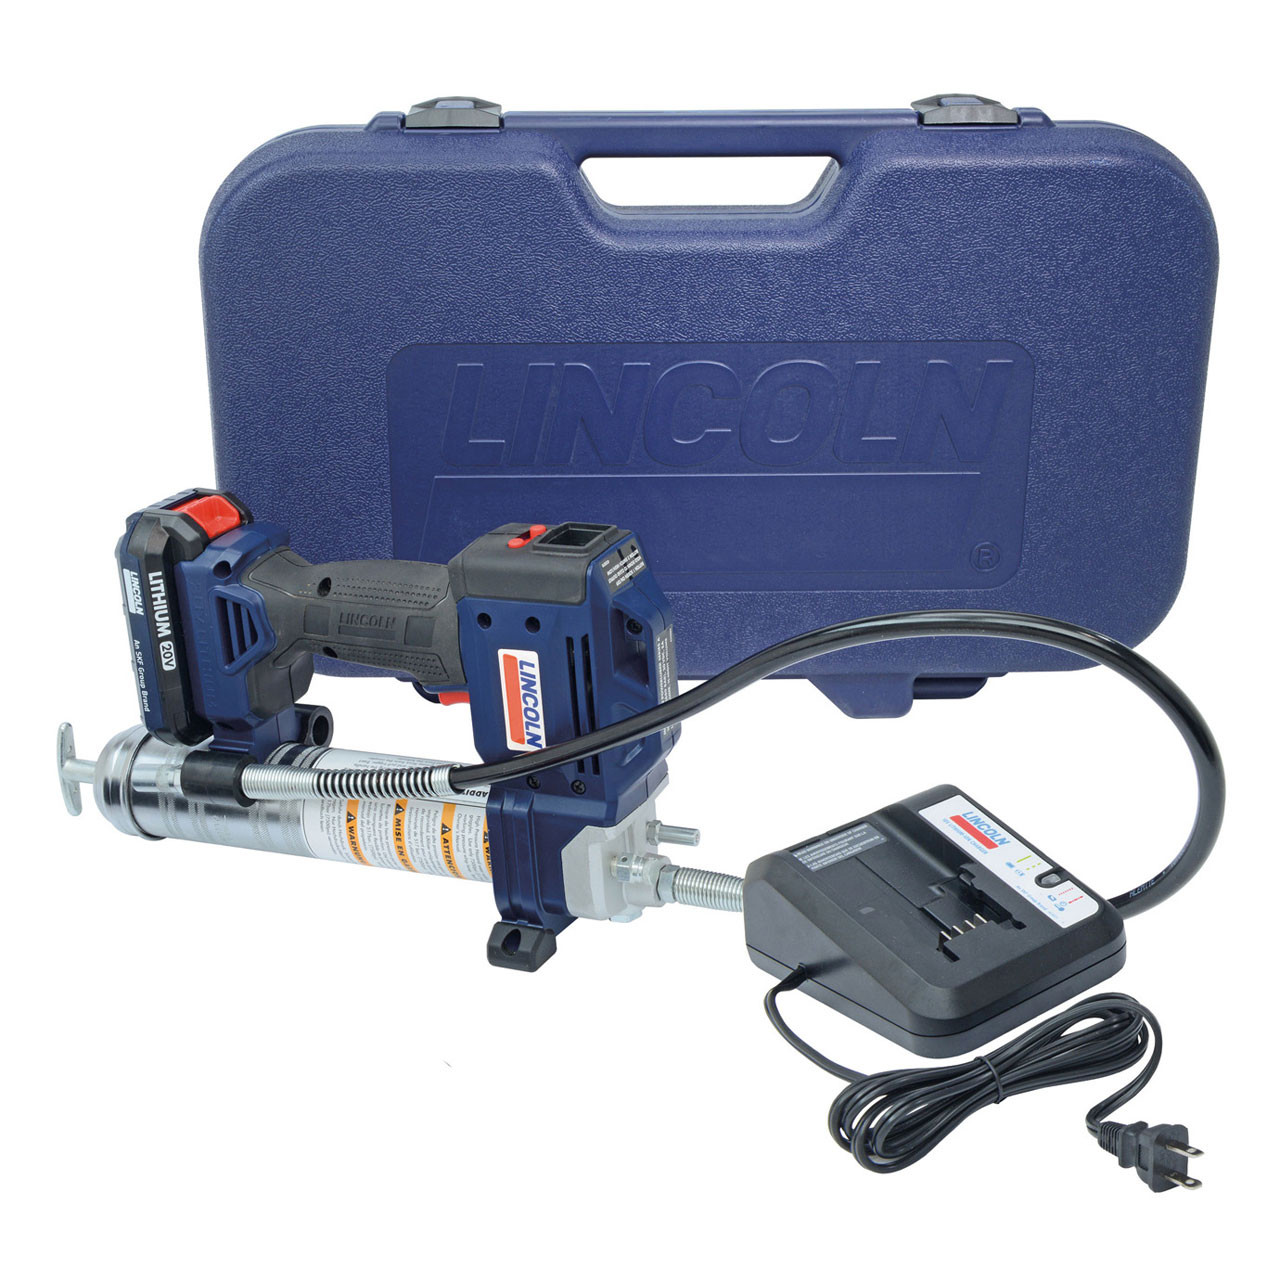 Electric Grease Gun Lincoln Industrial Model 1882 Powerluber 20v Lithium Ion Grease Gun Kit